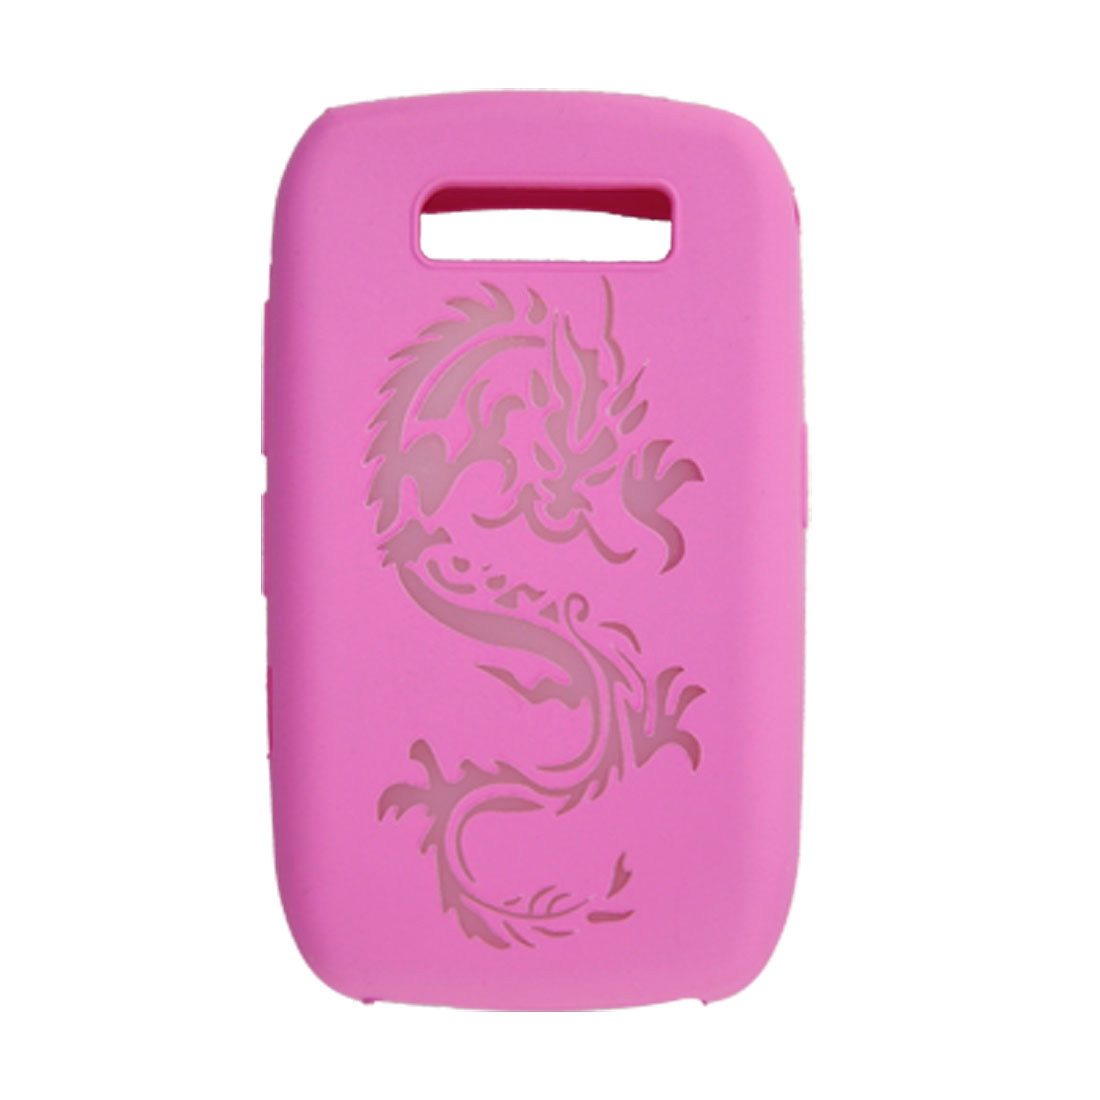 Deep Pink Dragon Pattern Silicone Skin for BlackBerry 8900